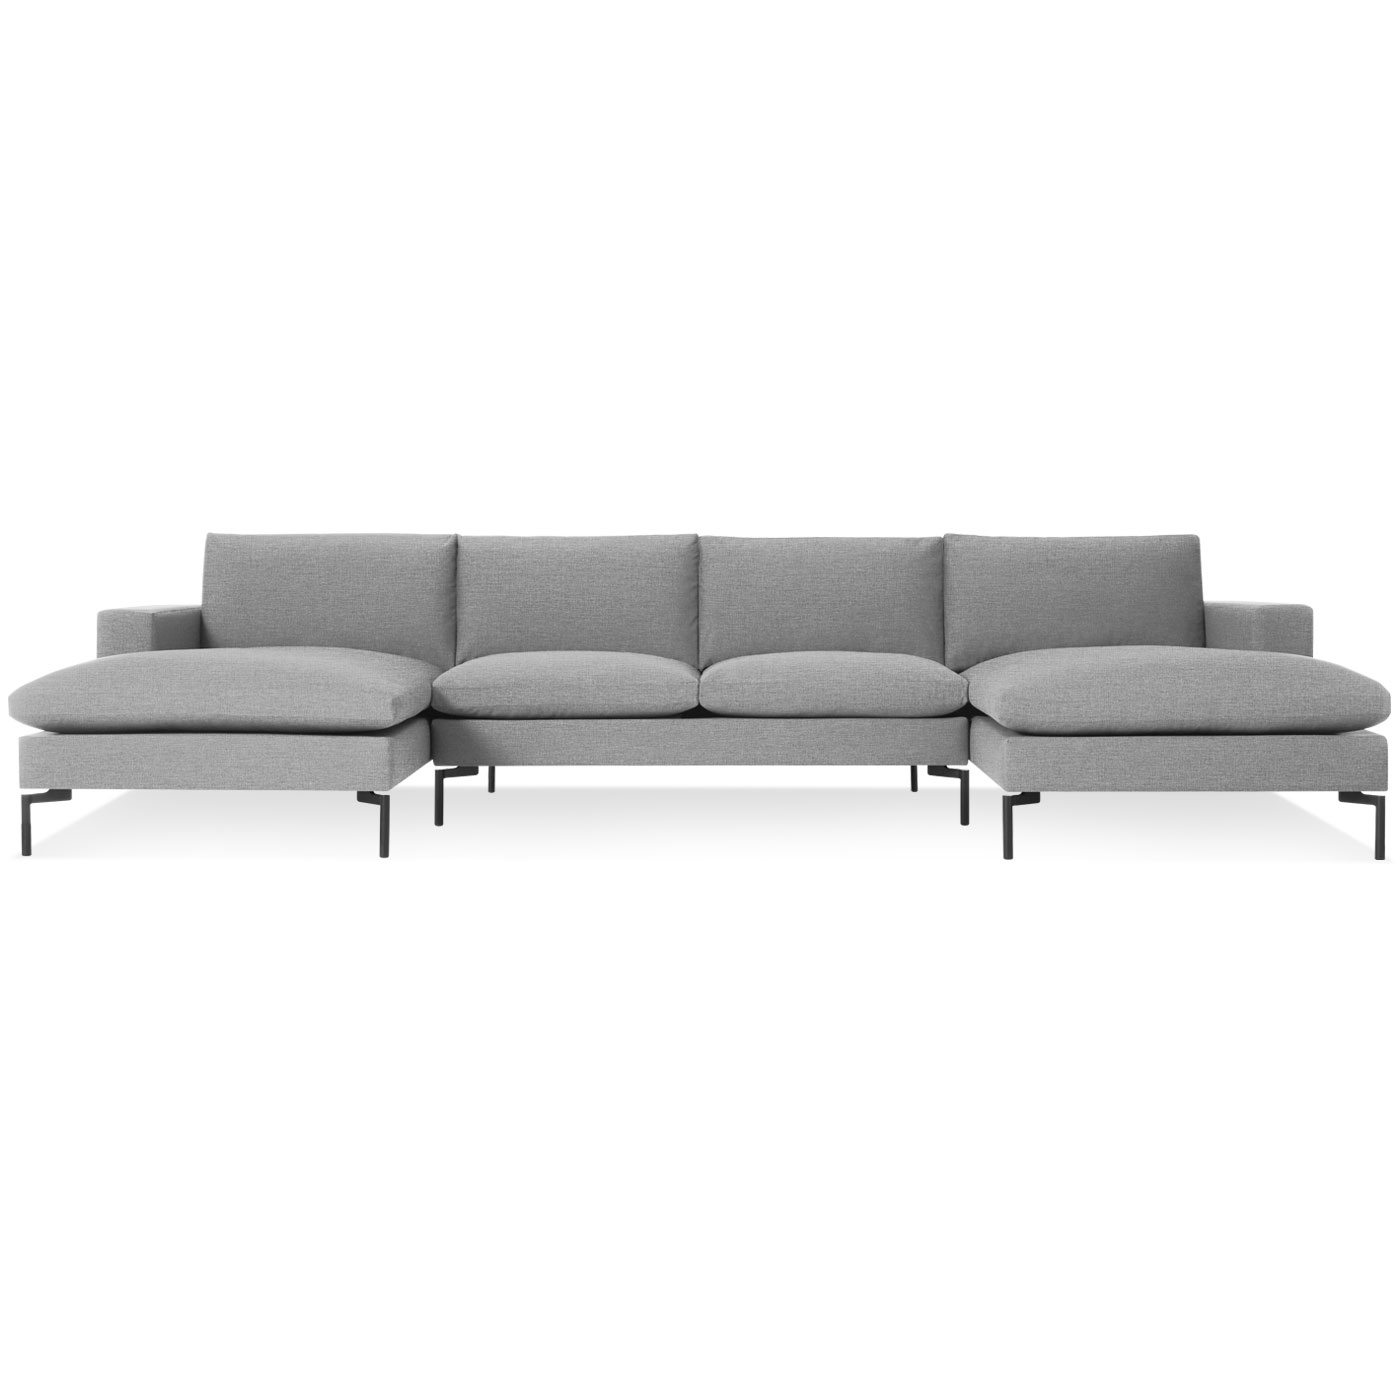 New Standard Modern U Shaped Sectional Sofa (View 11 of 15)